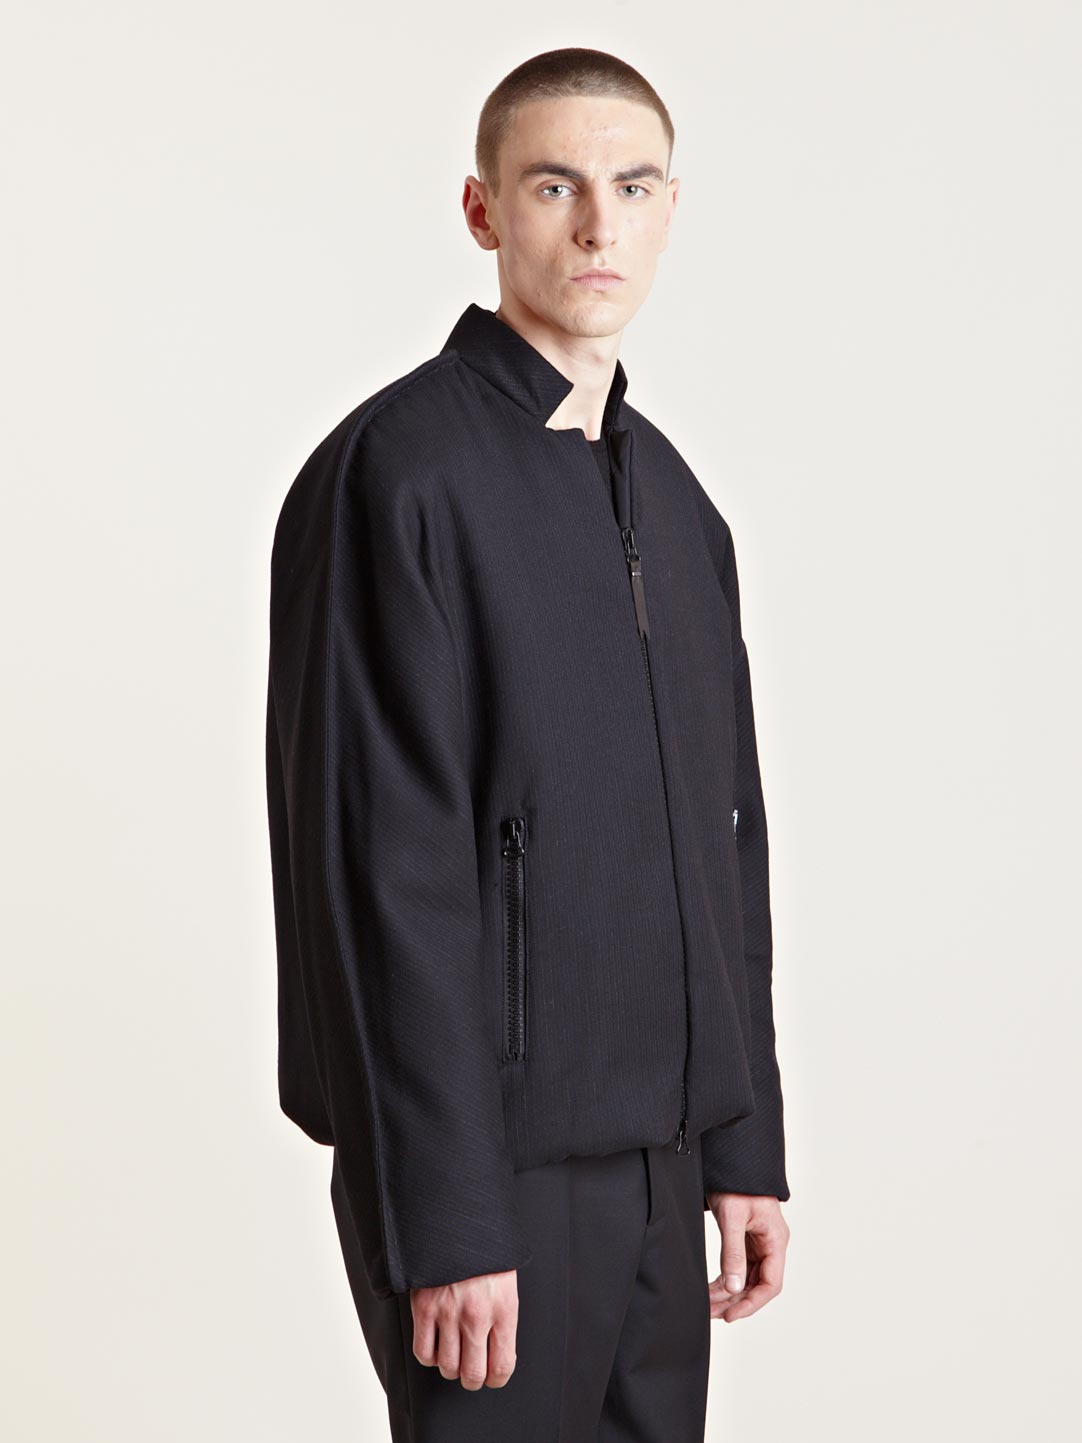 Lanvin Mens Blouson Bomber Jacket In Black For Men Lyst